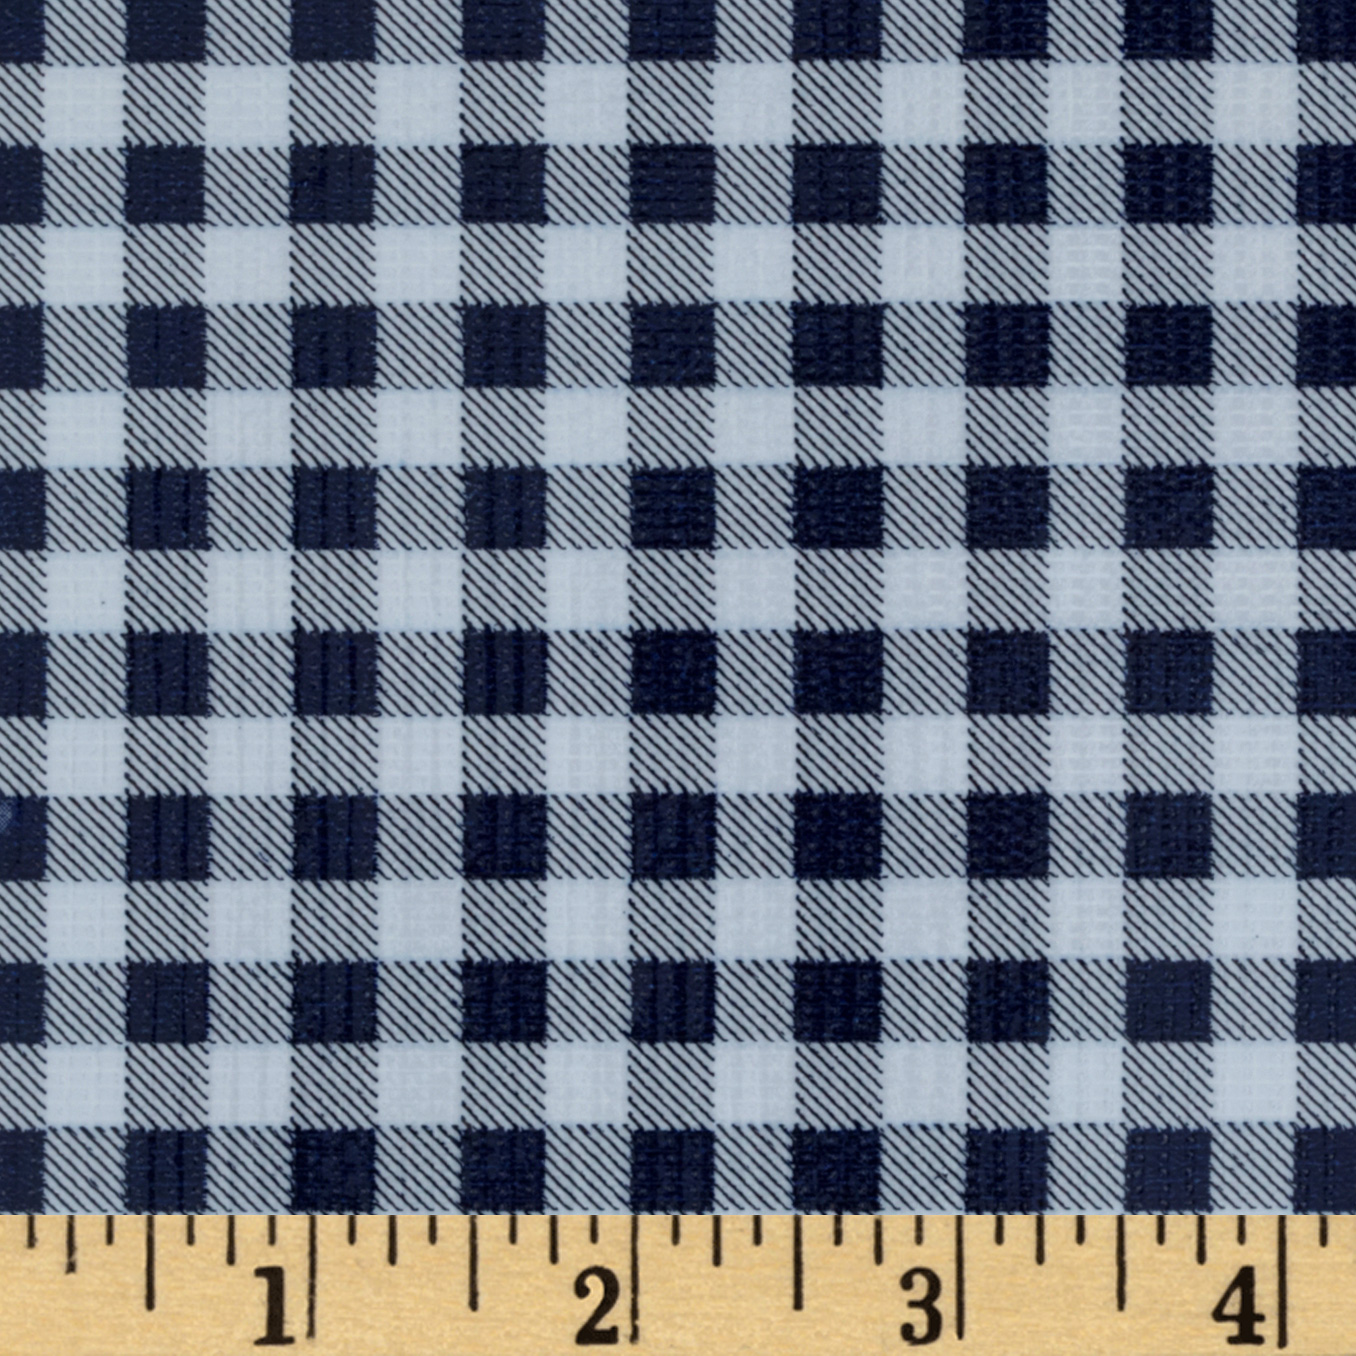 Oilcloth Gingham Navy Fabric by Oilcloth International in USA